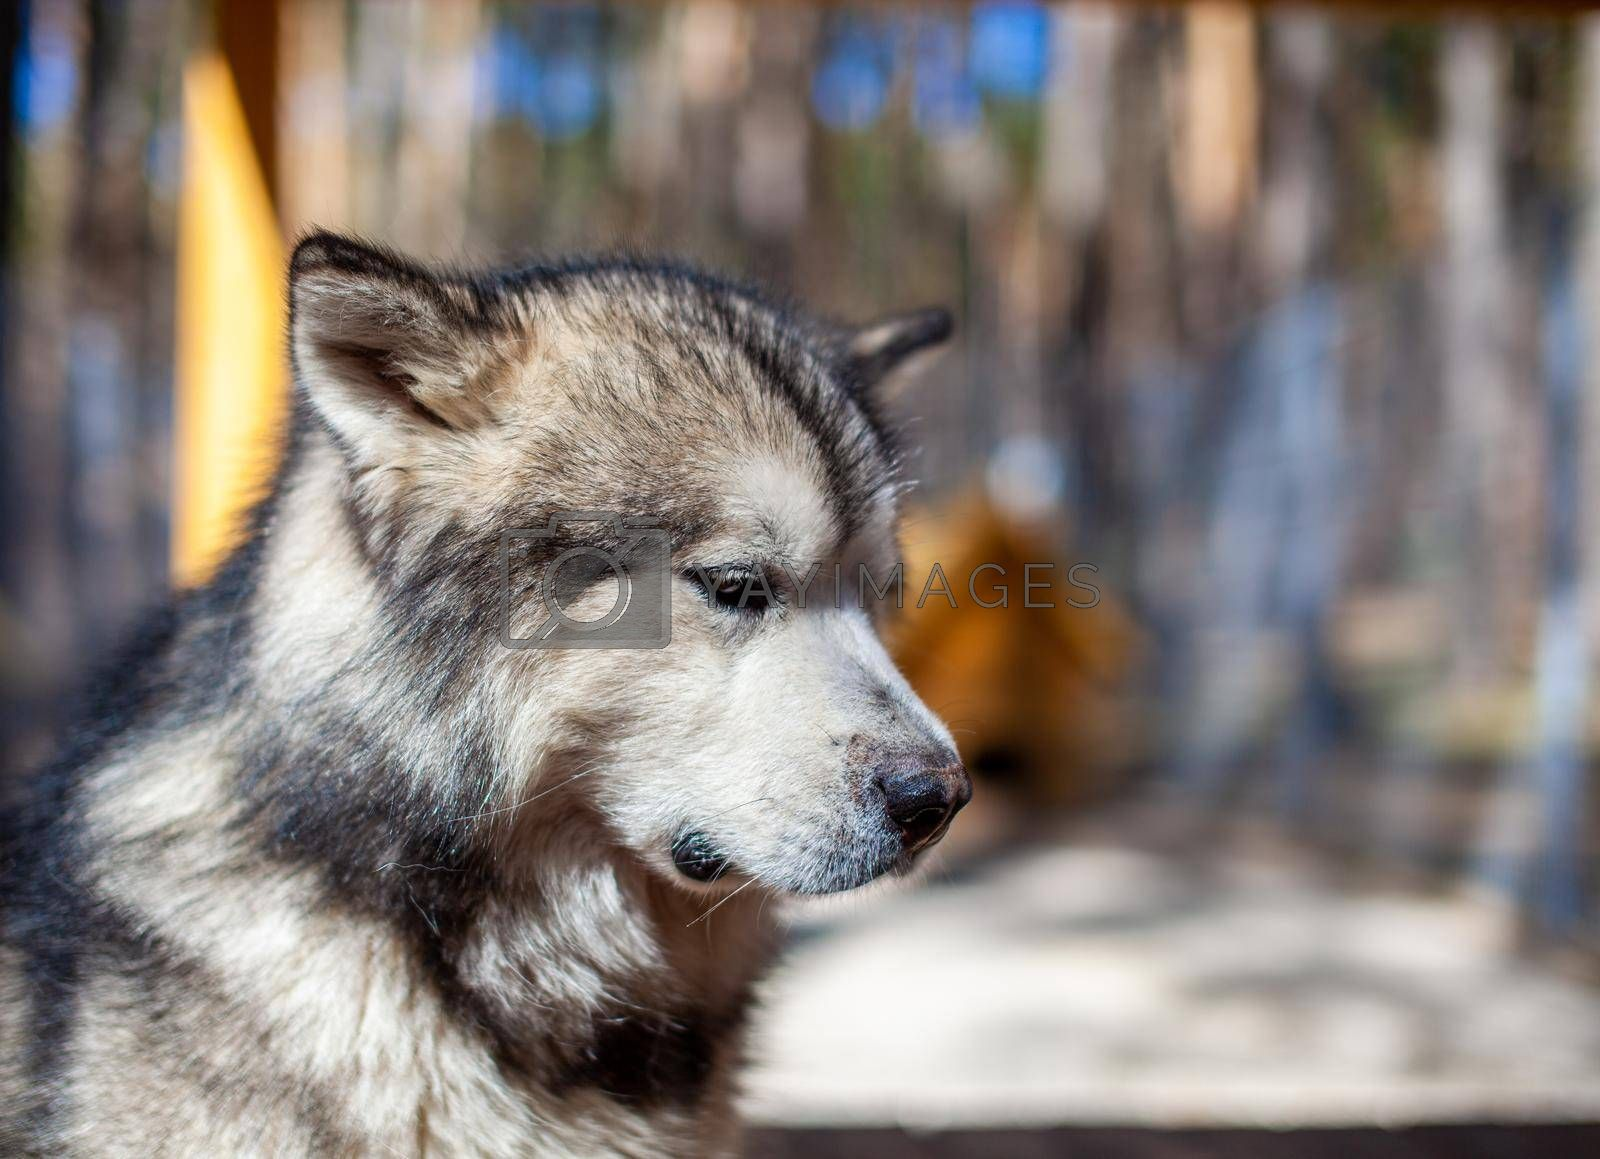 A beautiful and kind Alaskan Malamute shepherd sits in an enclosure behind bars and looks with intelligent eyes. Indoor aviary.